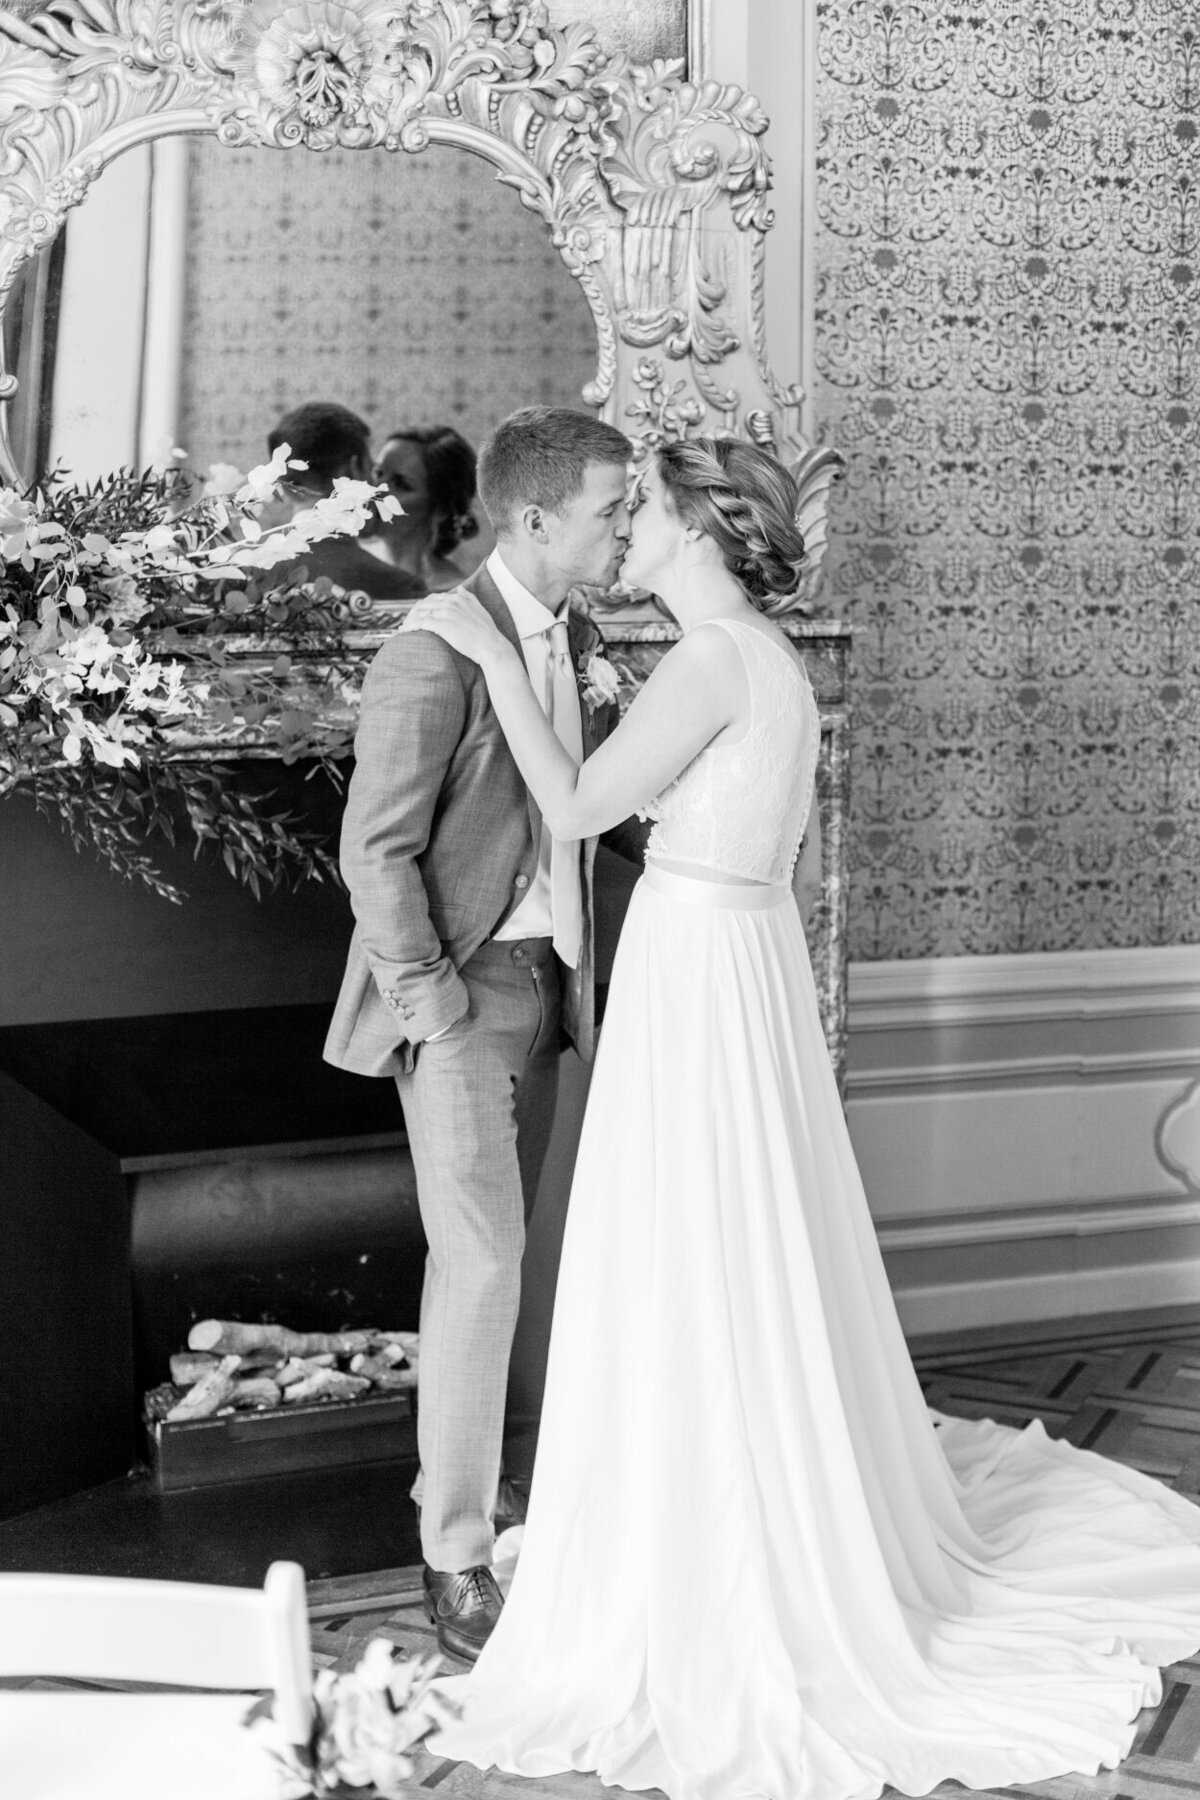 Black and white photo of the first kiss after the wedding ceremony for an intimate wedding photoshoot at the Tassenmuseum organized by Lovely & Planned